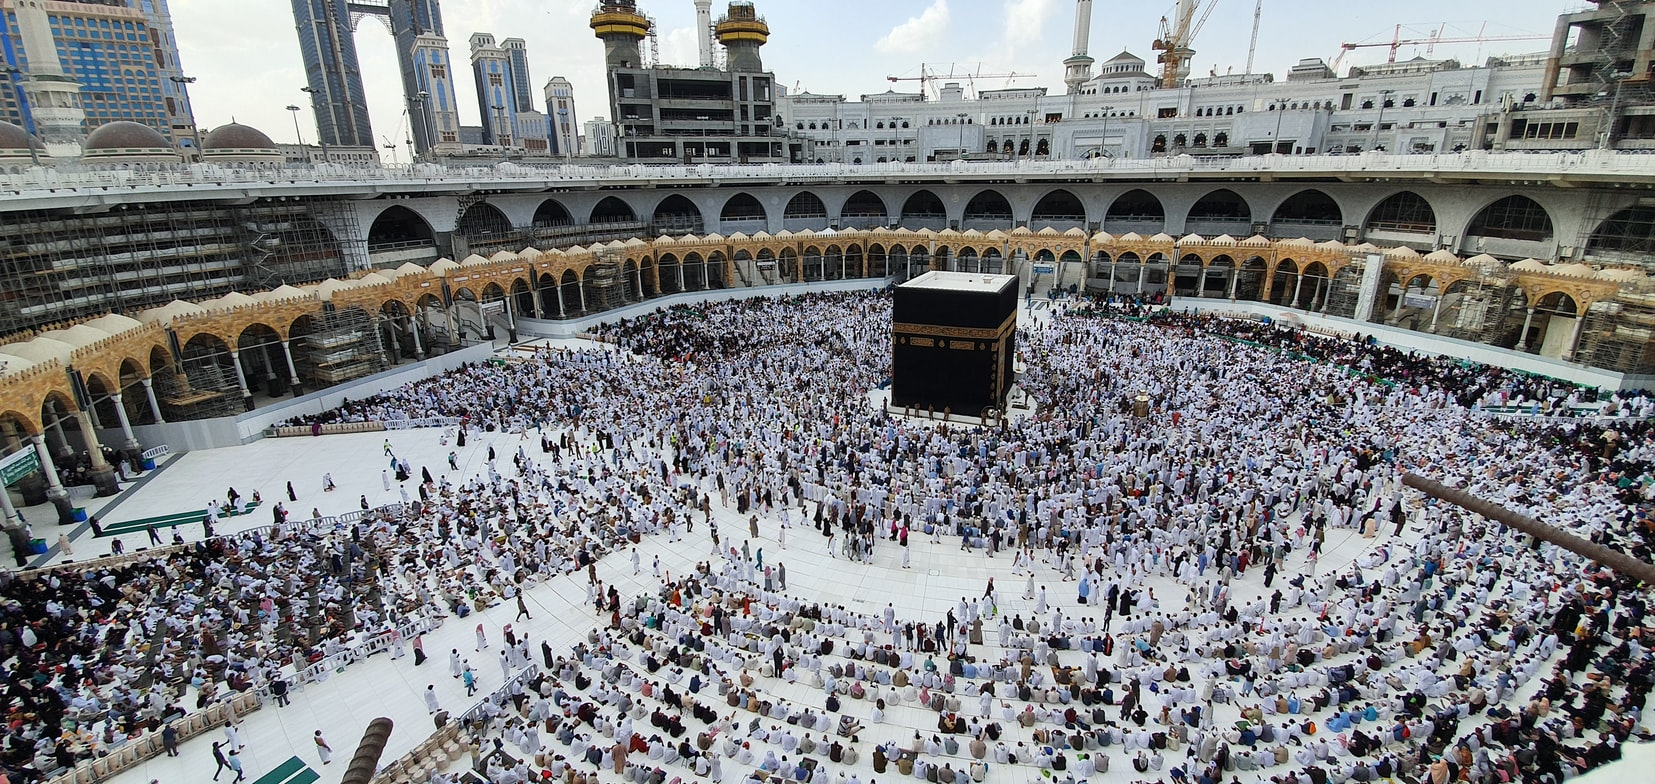 Mecca to limit Hajj visitors to one thousand